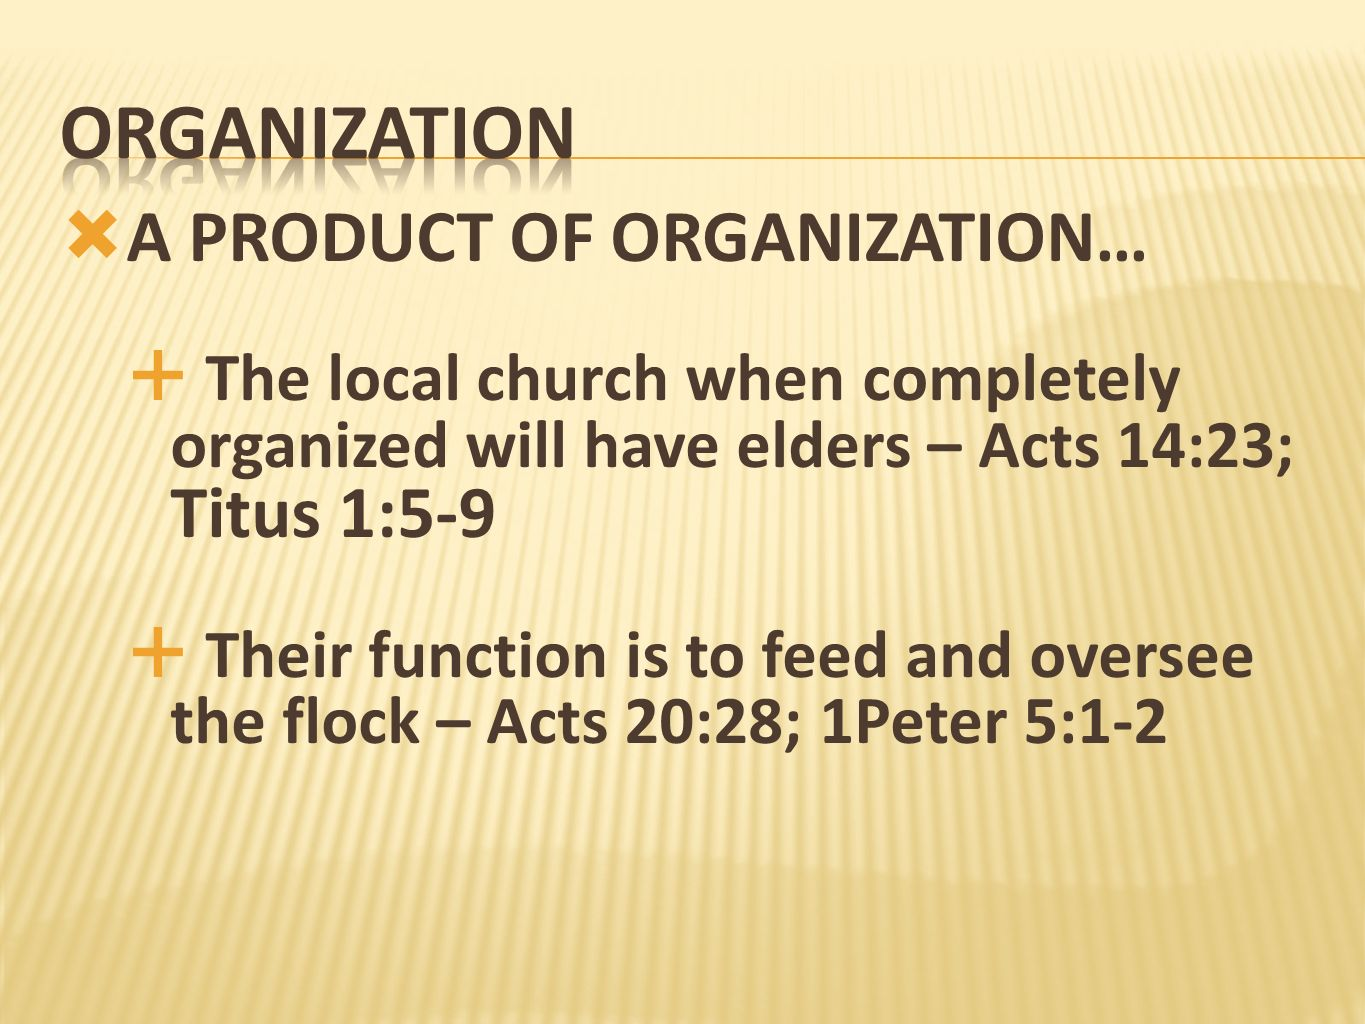 organization A PRODUCT OF ORGANIZATION…